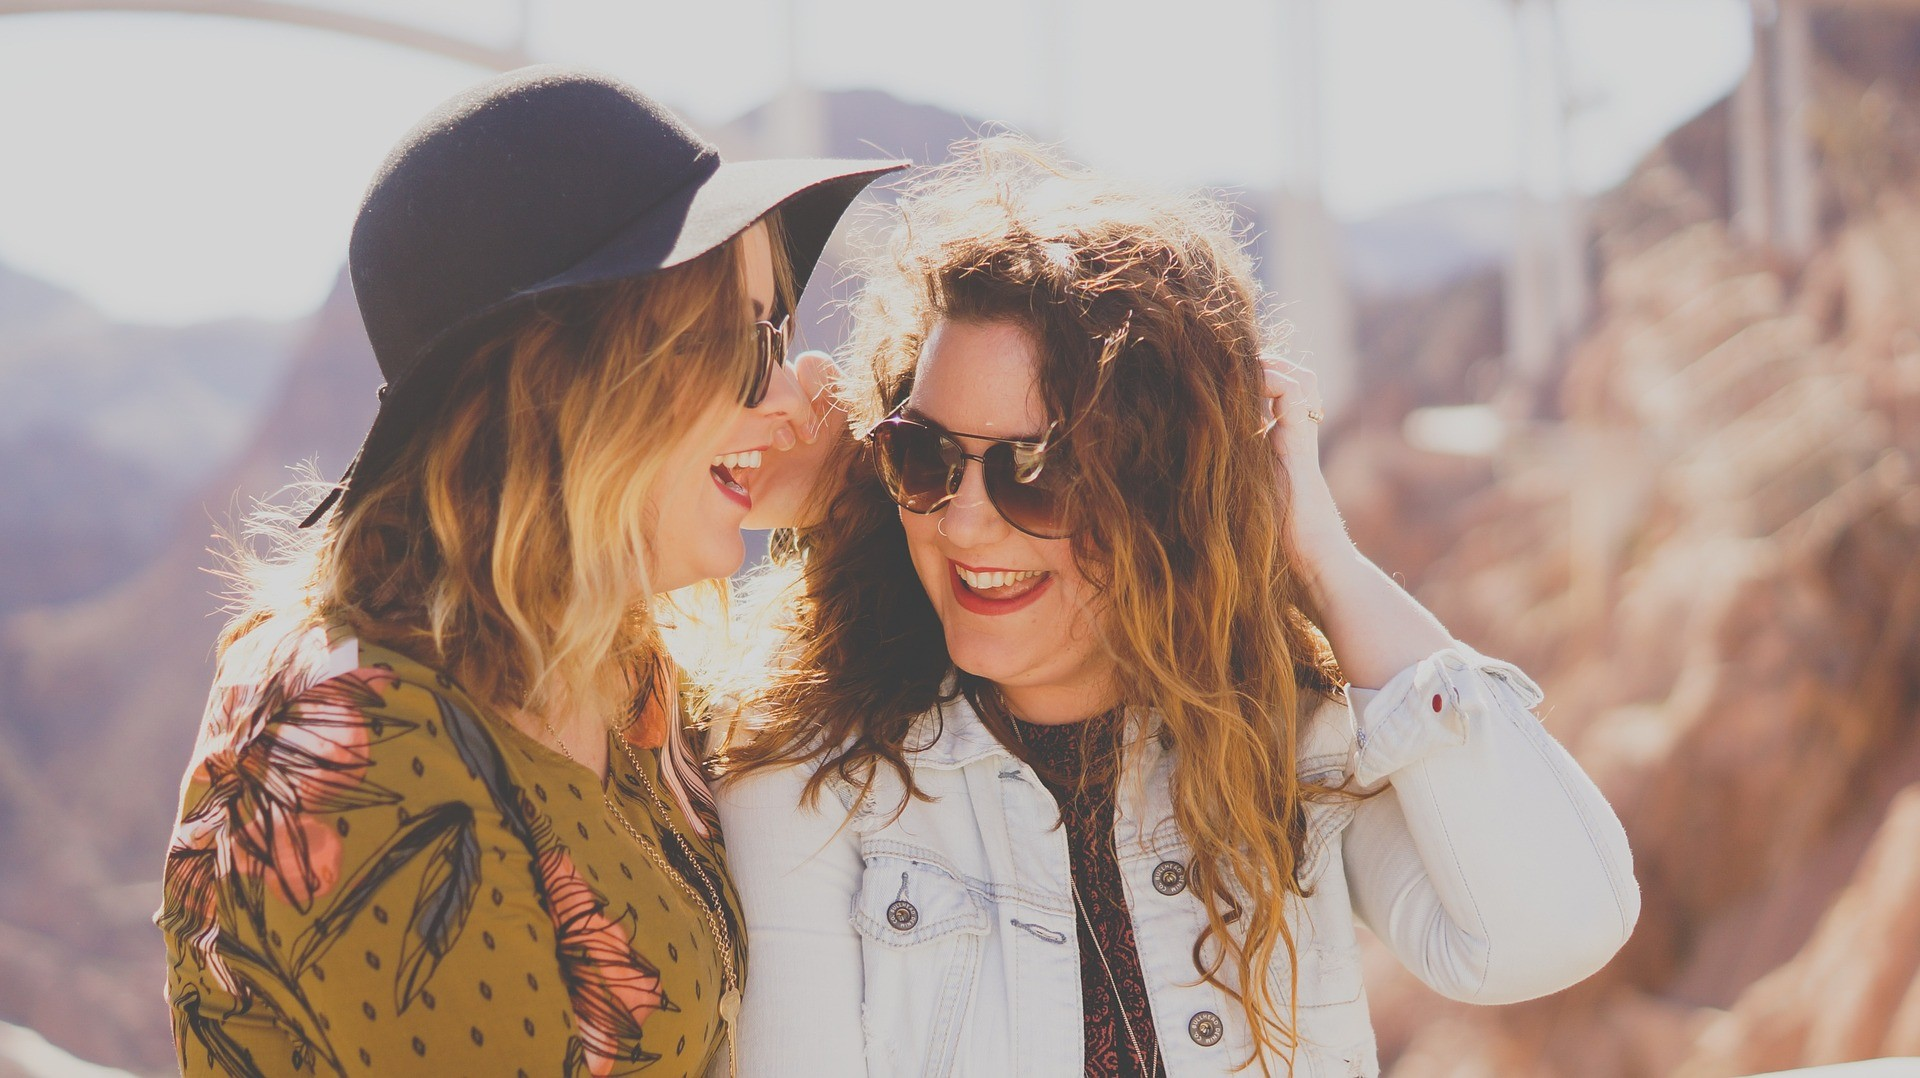 Two women best friends chatting and laughing